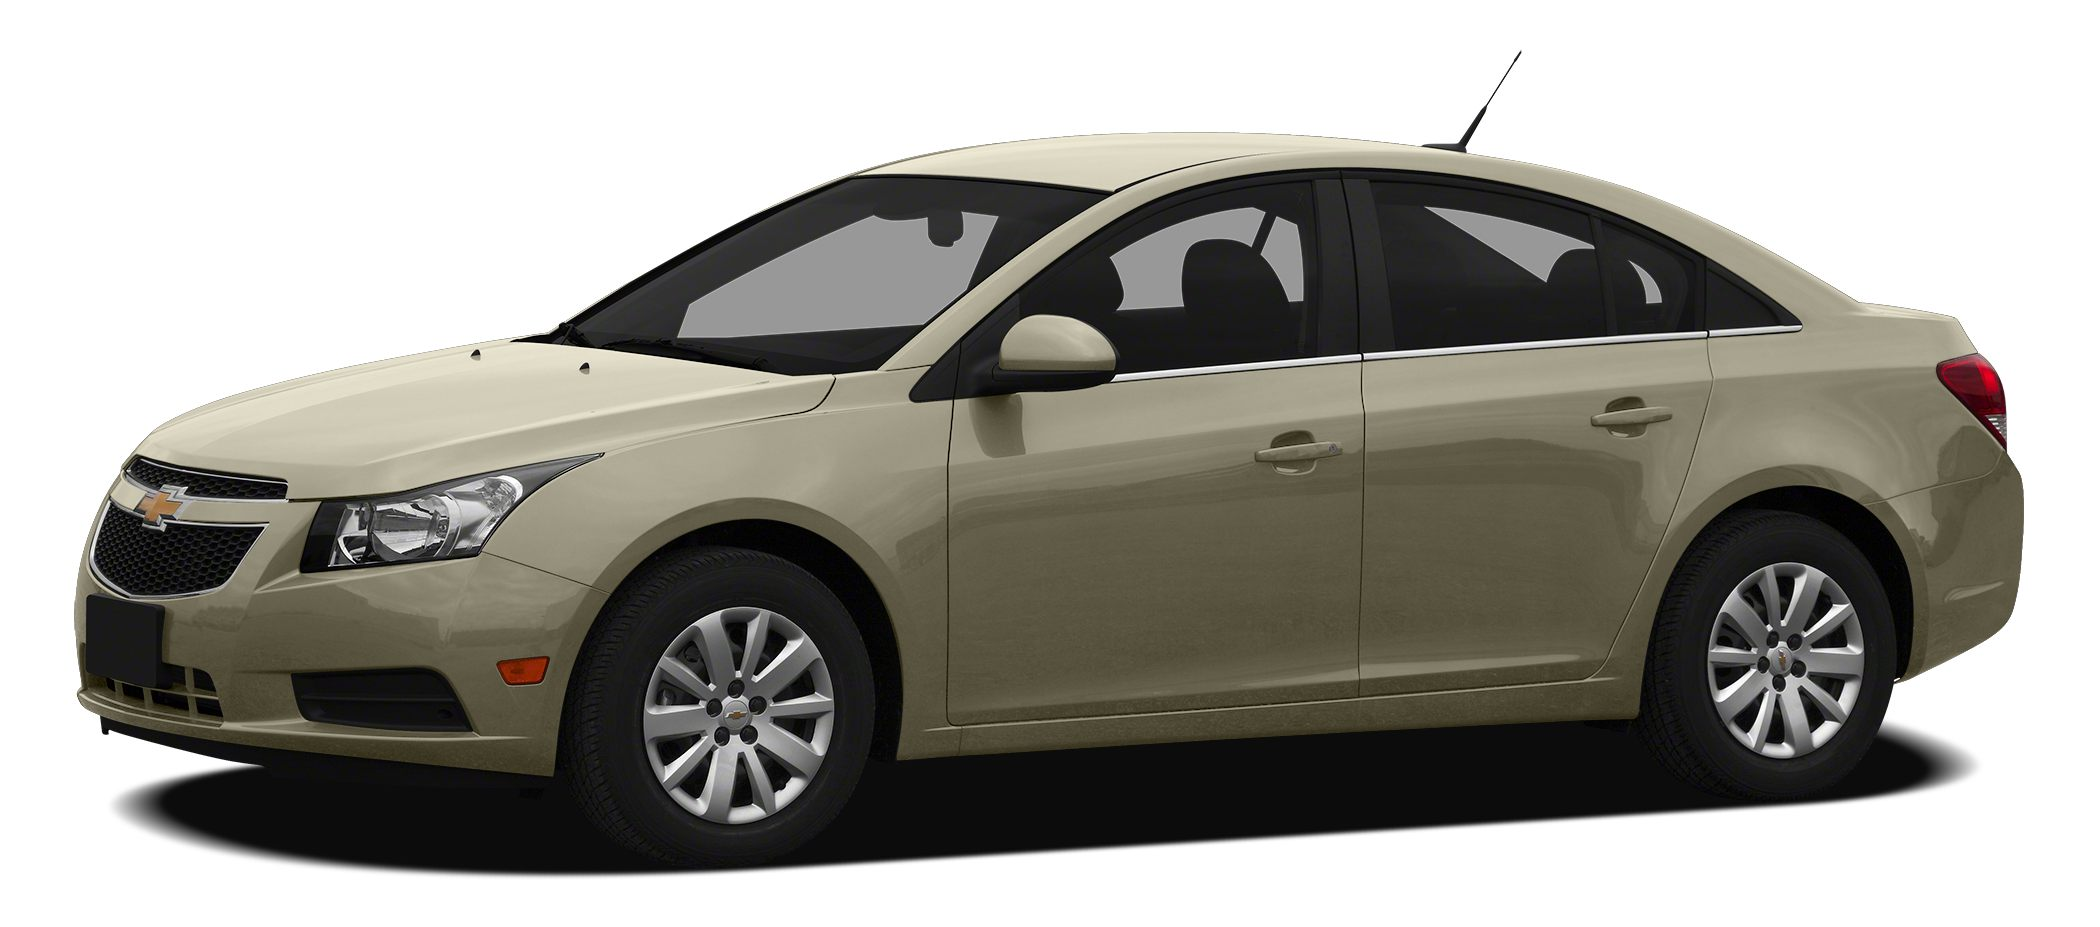 2011 Chevrolet Cruze Eco New Arrival This 2011 Chevrolet Cruze LT w1FL Includes MP3 CD Player